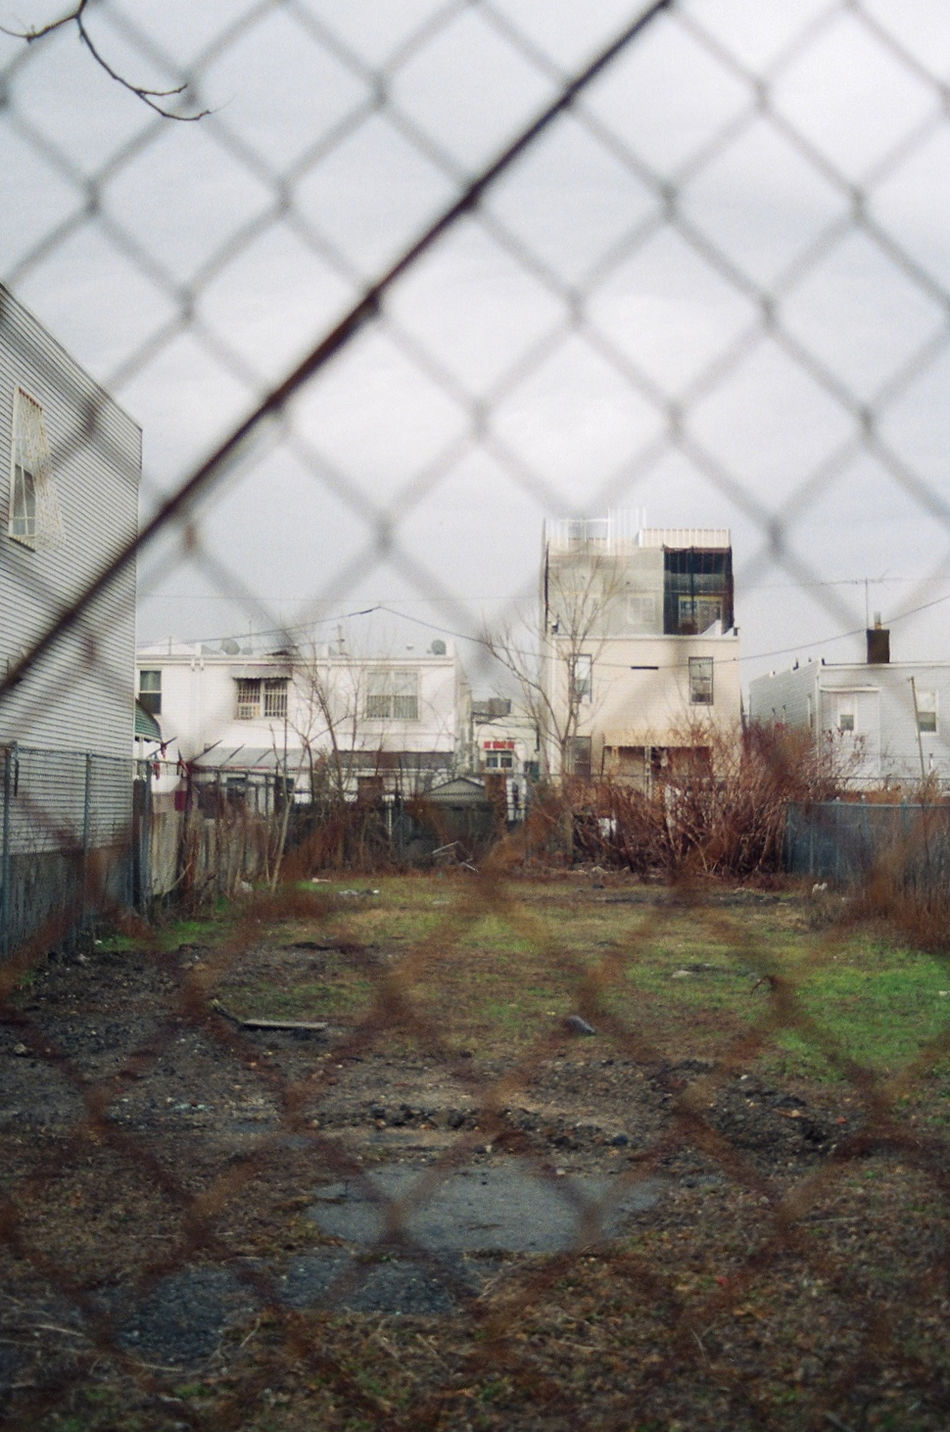 Architecture Backyard Brooklyn Built Structure City Empty Fence Film Photography Ghetto Grass New York City Ominous Overcast Threatening USA Weather